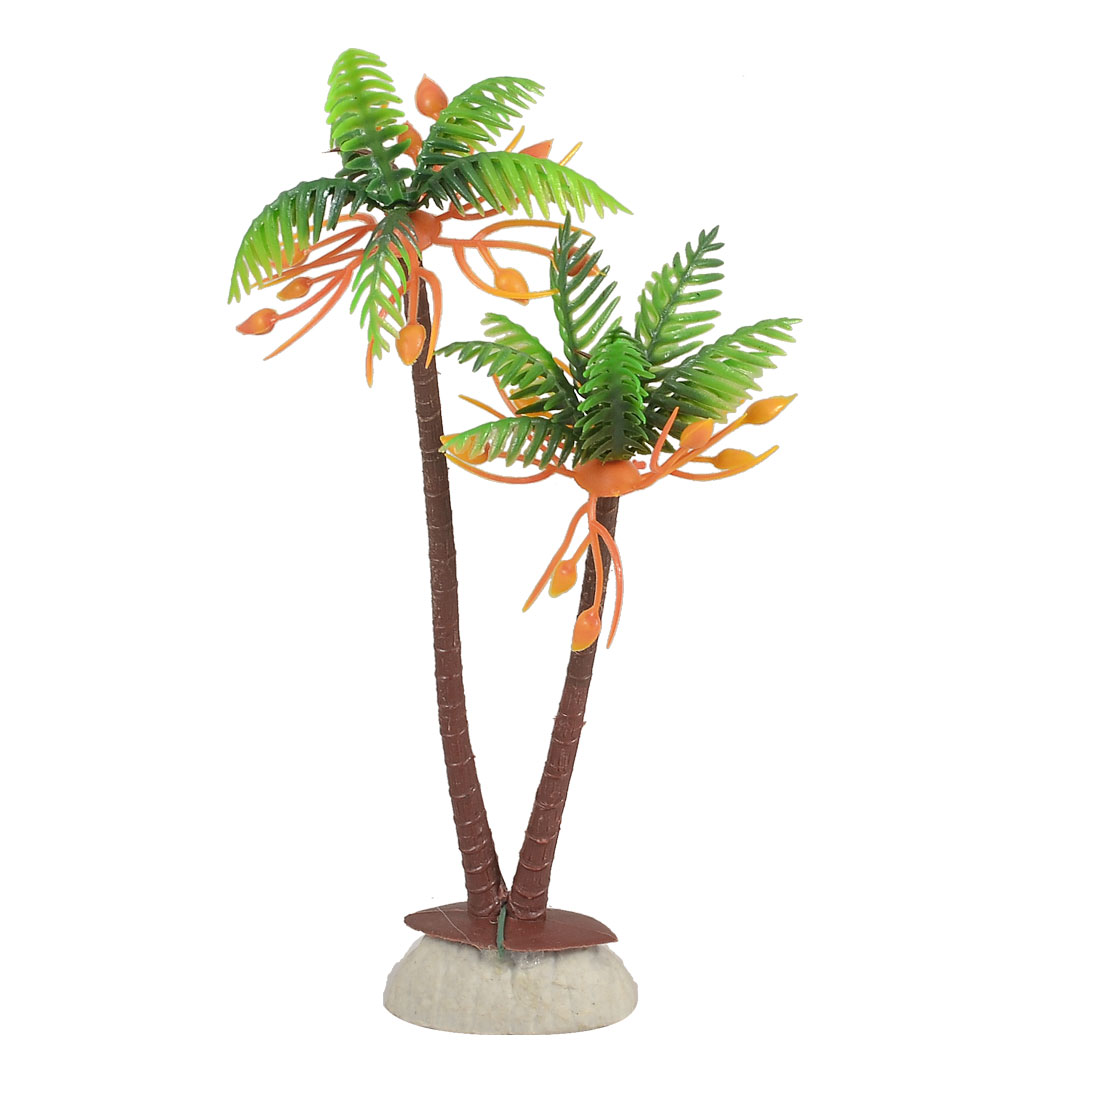 Aquarium Fish Tank Ornament Coconut Palm Shape Plastic Water Plant